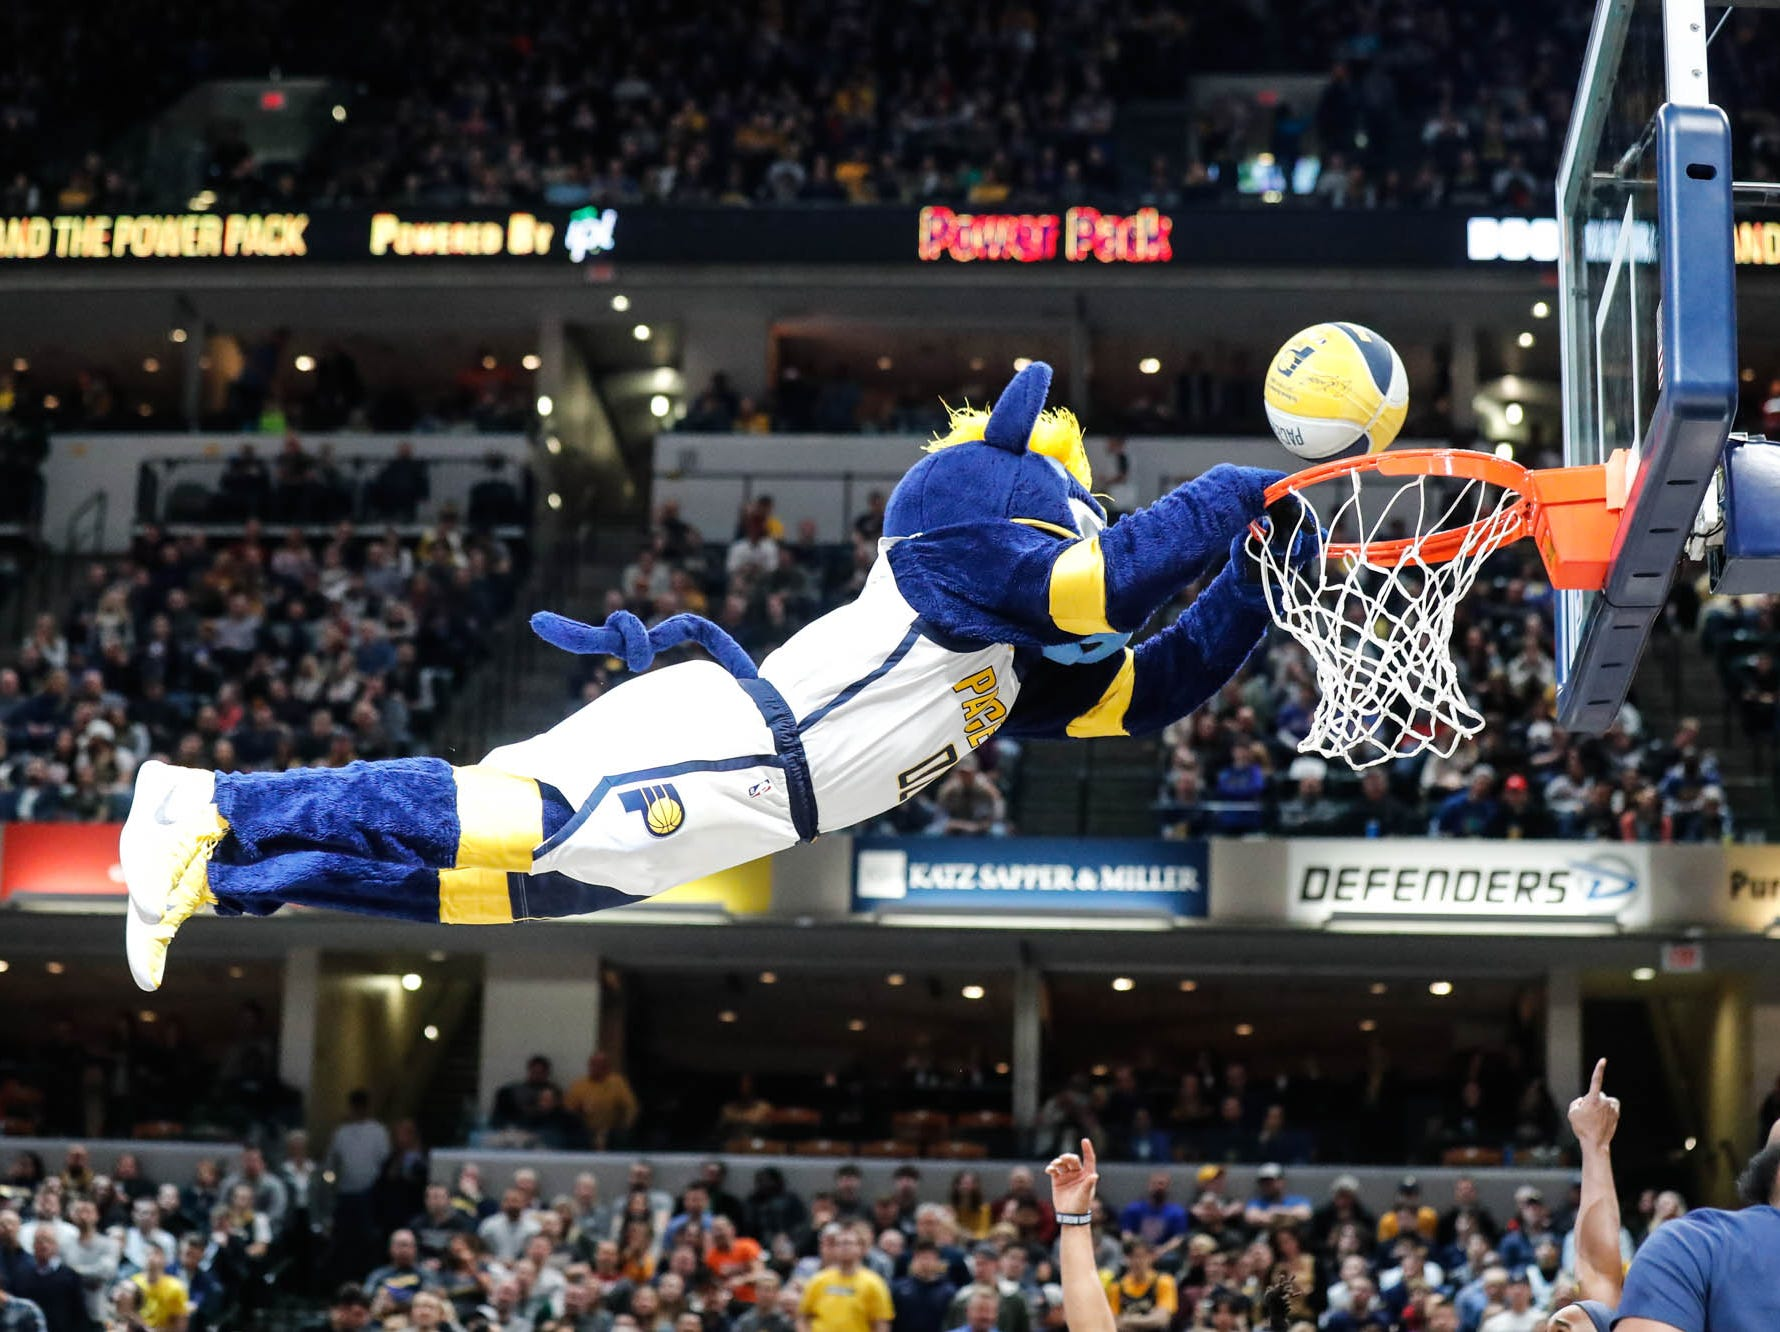 Pacers Mascot Boomer dunks the ball during a game between the Indiana Pacers and the Detroit Pistons at at Bankers Life Fieldhouse in Indianapolis on Friday, Dec. 28, 2018.